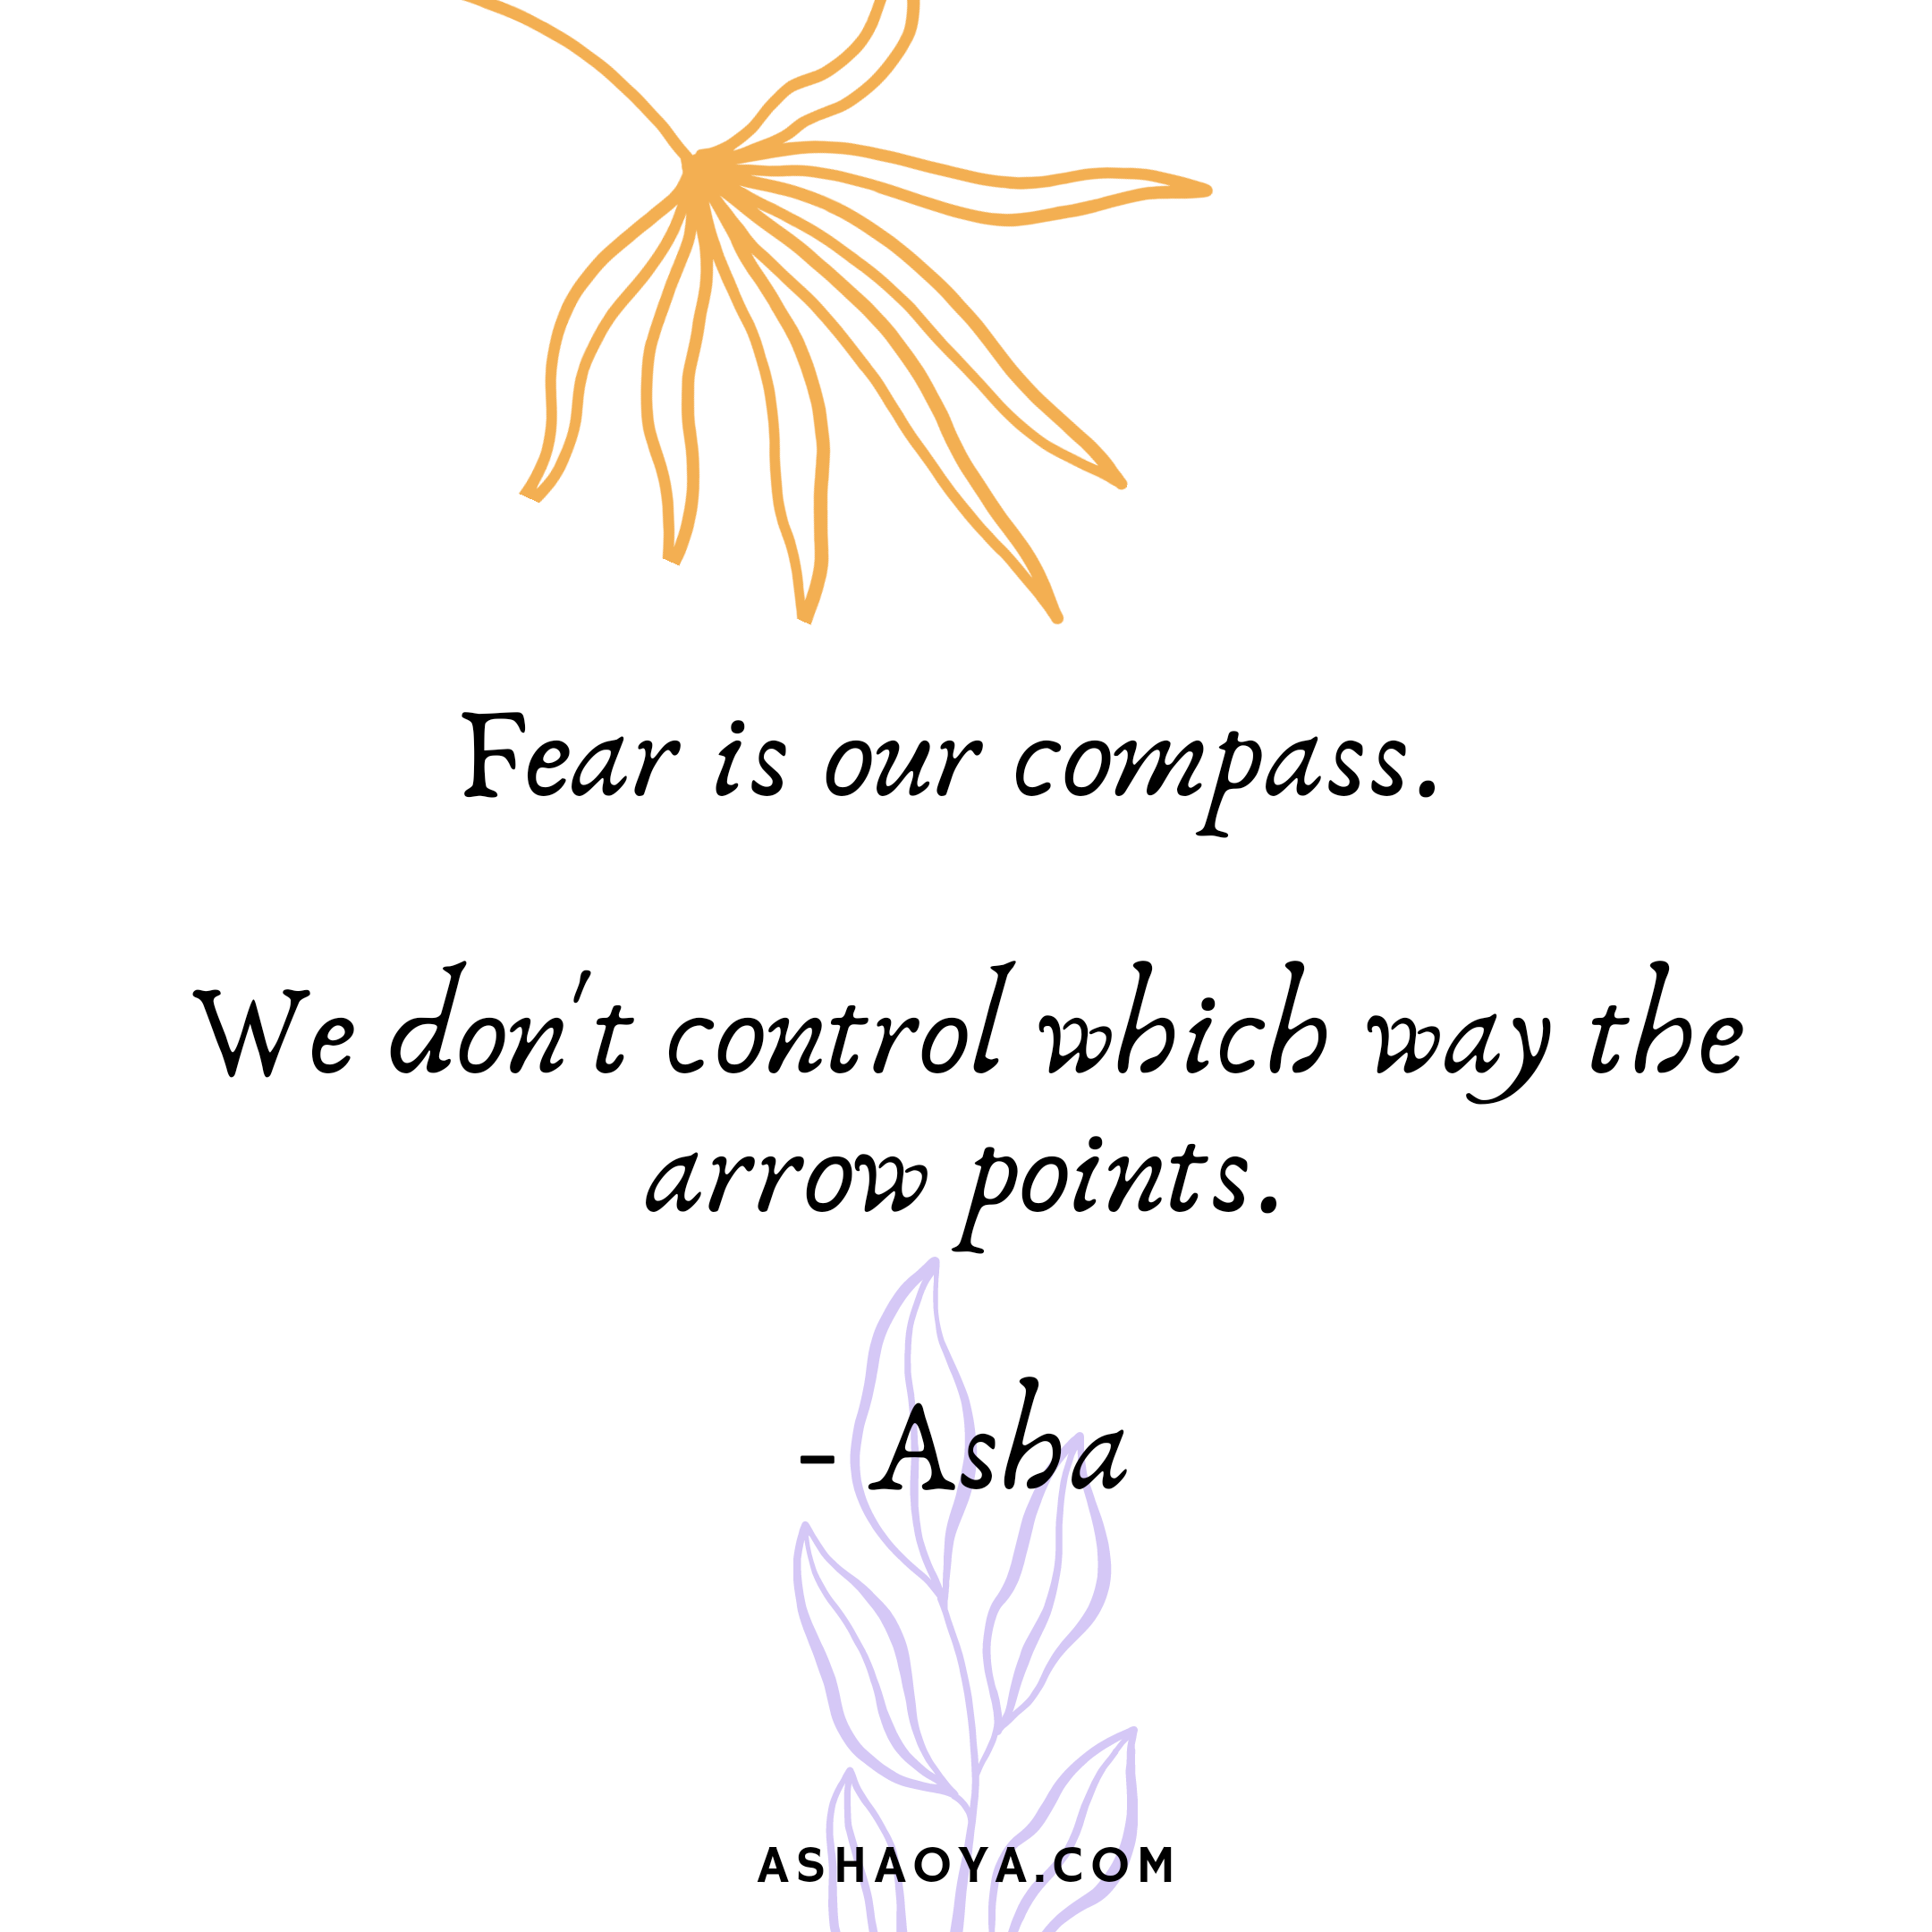 Fear is Our Compass